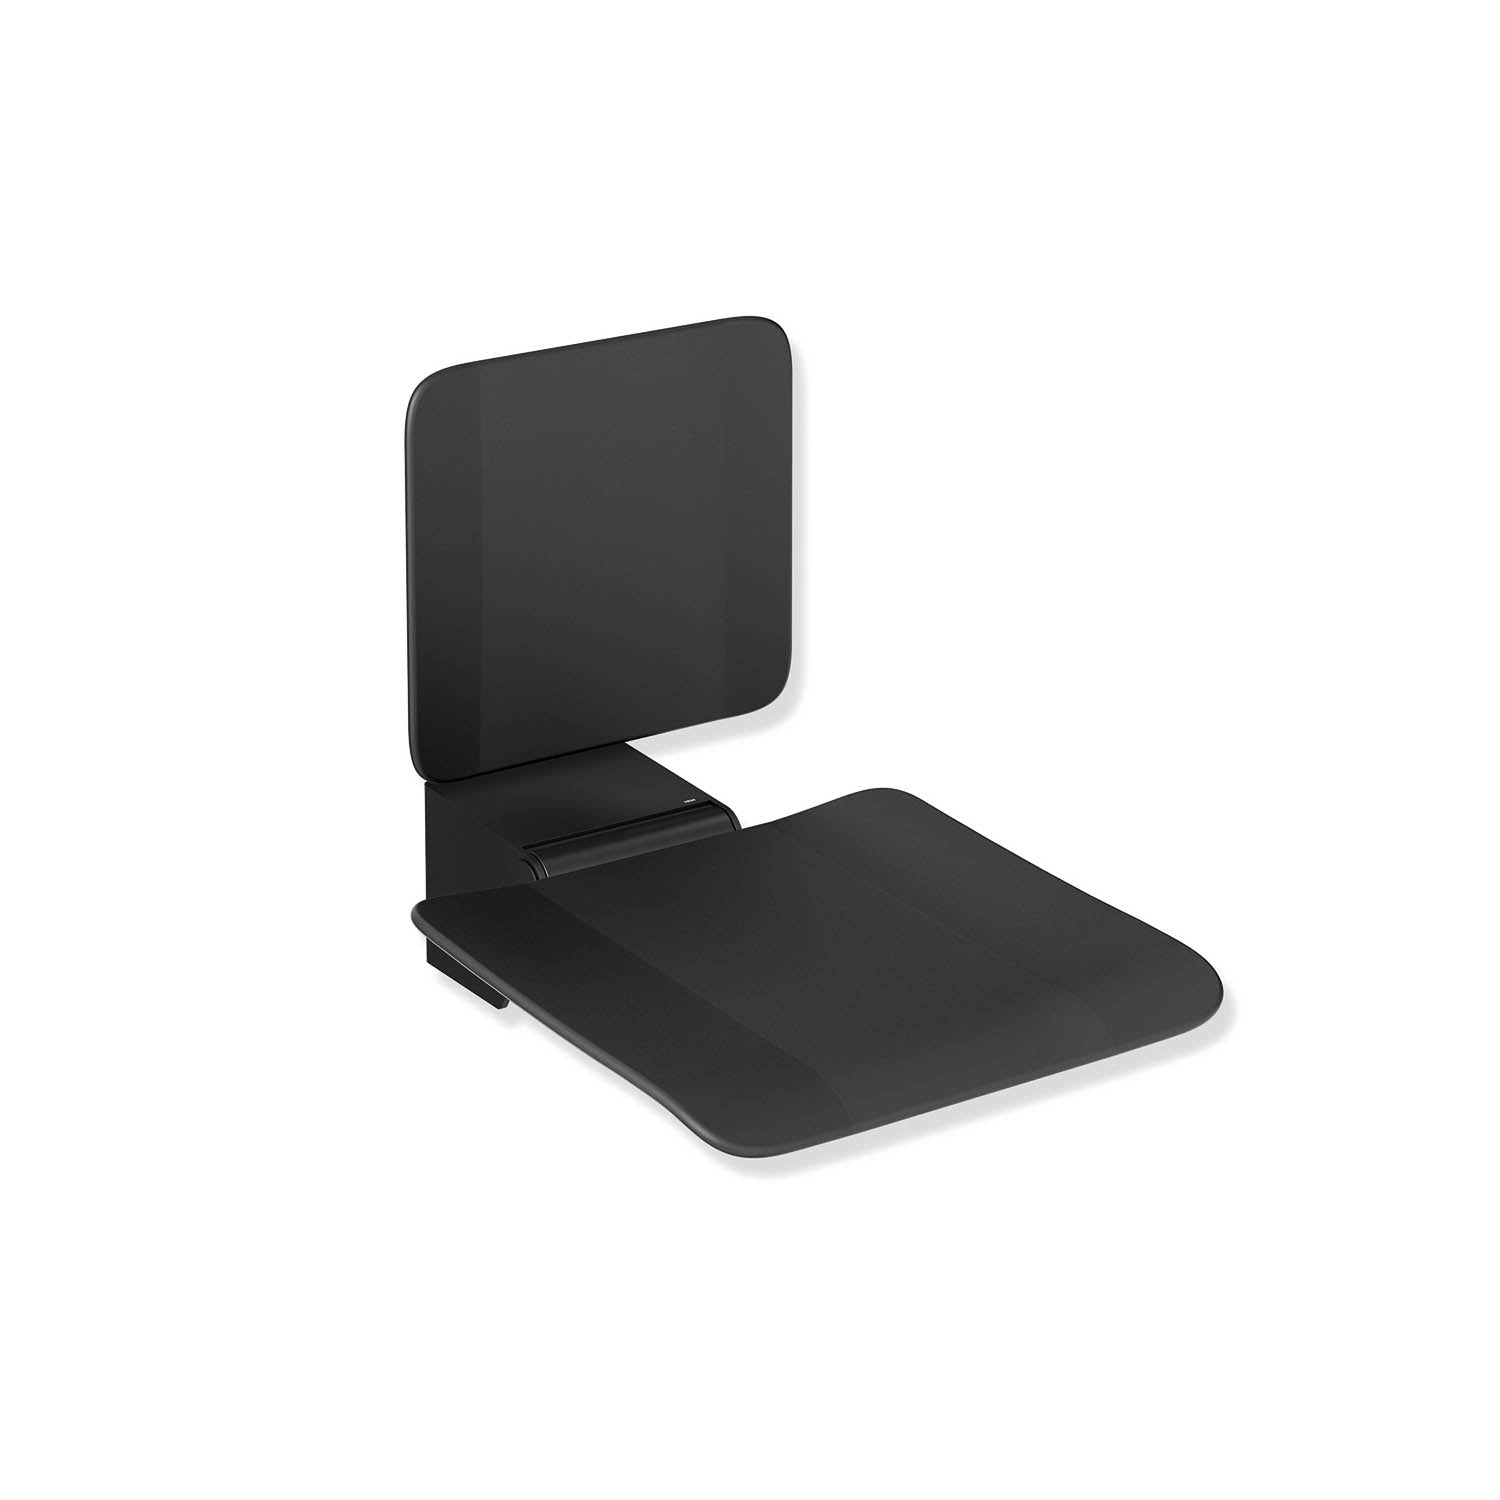 Freestyle Fixed Shower Seat with a Backrest in a matt black seat and matt black finish bracket on a white background